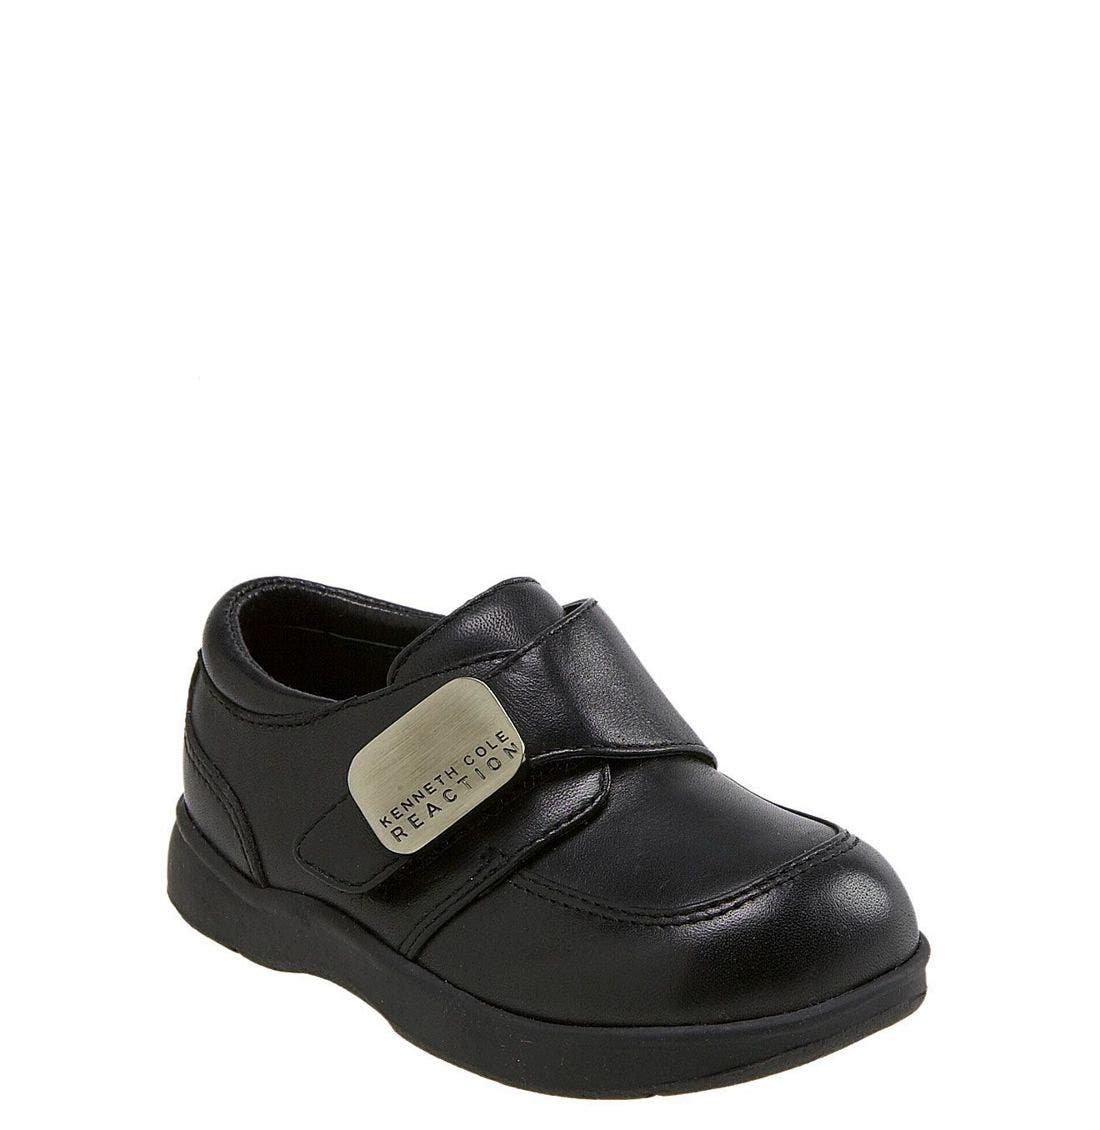 Reaction Kenneth Cole 'Tiny Flex' Slip-On (Baby, Walker & Toddler)